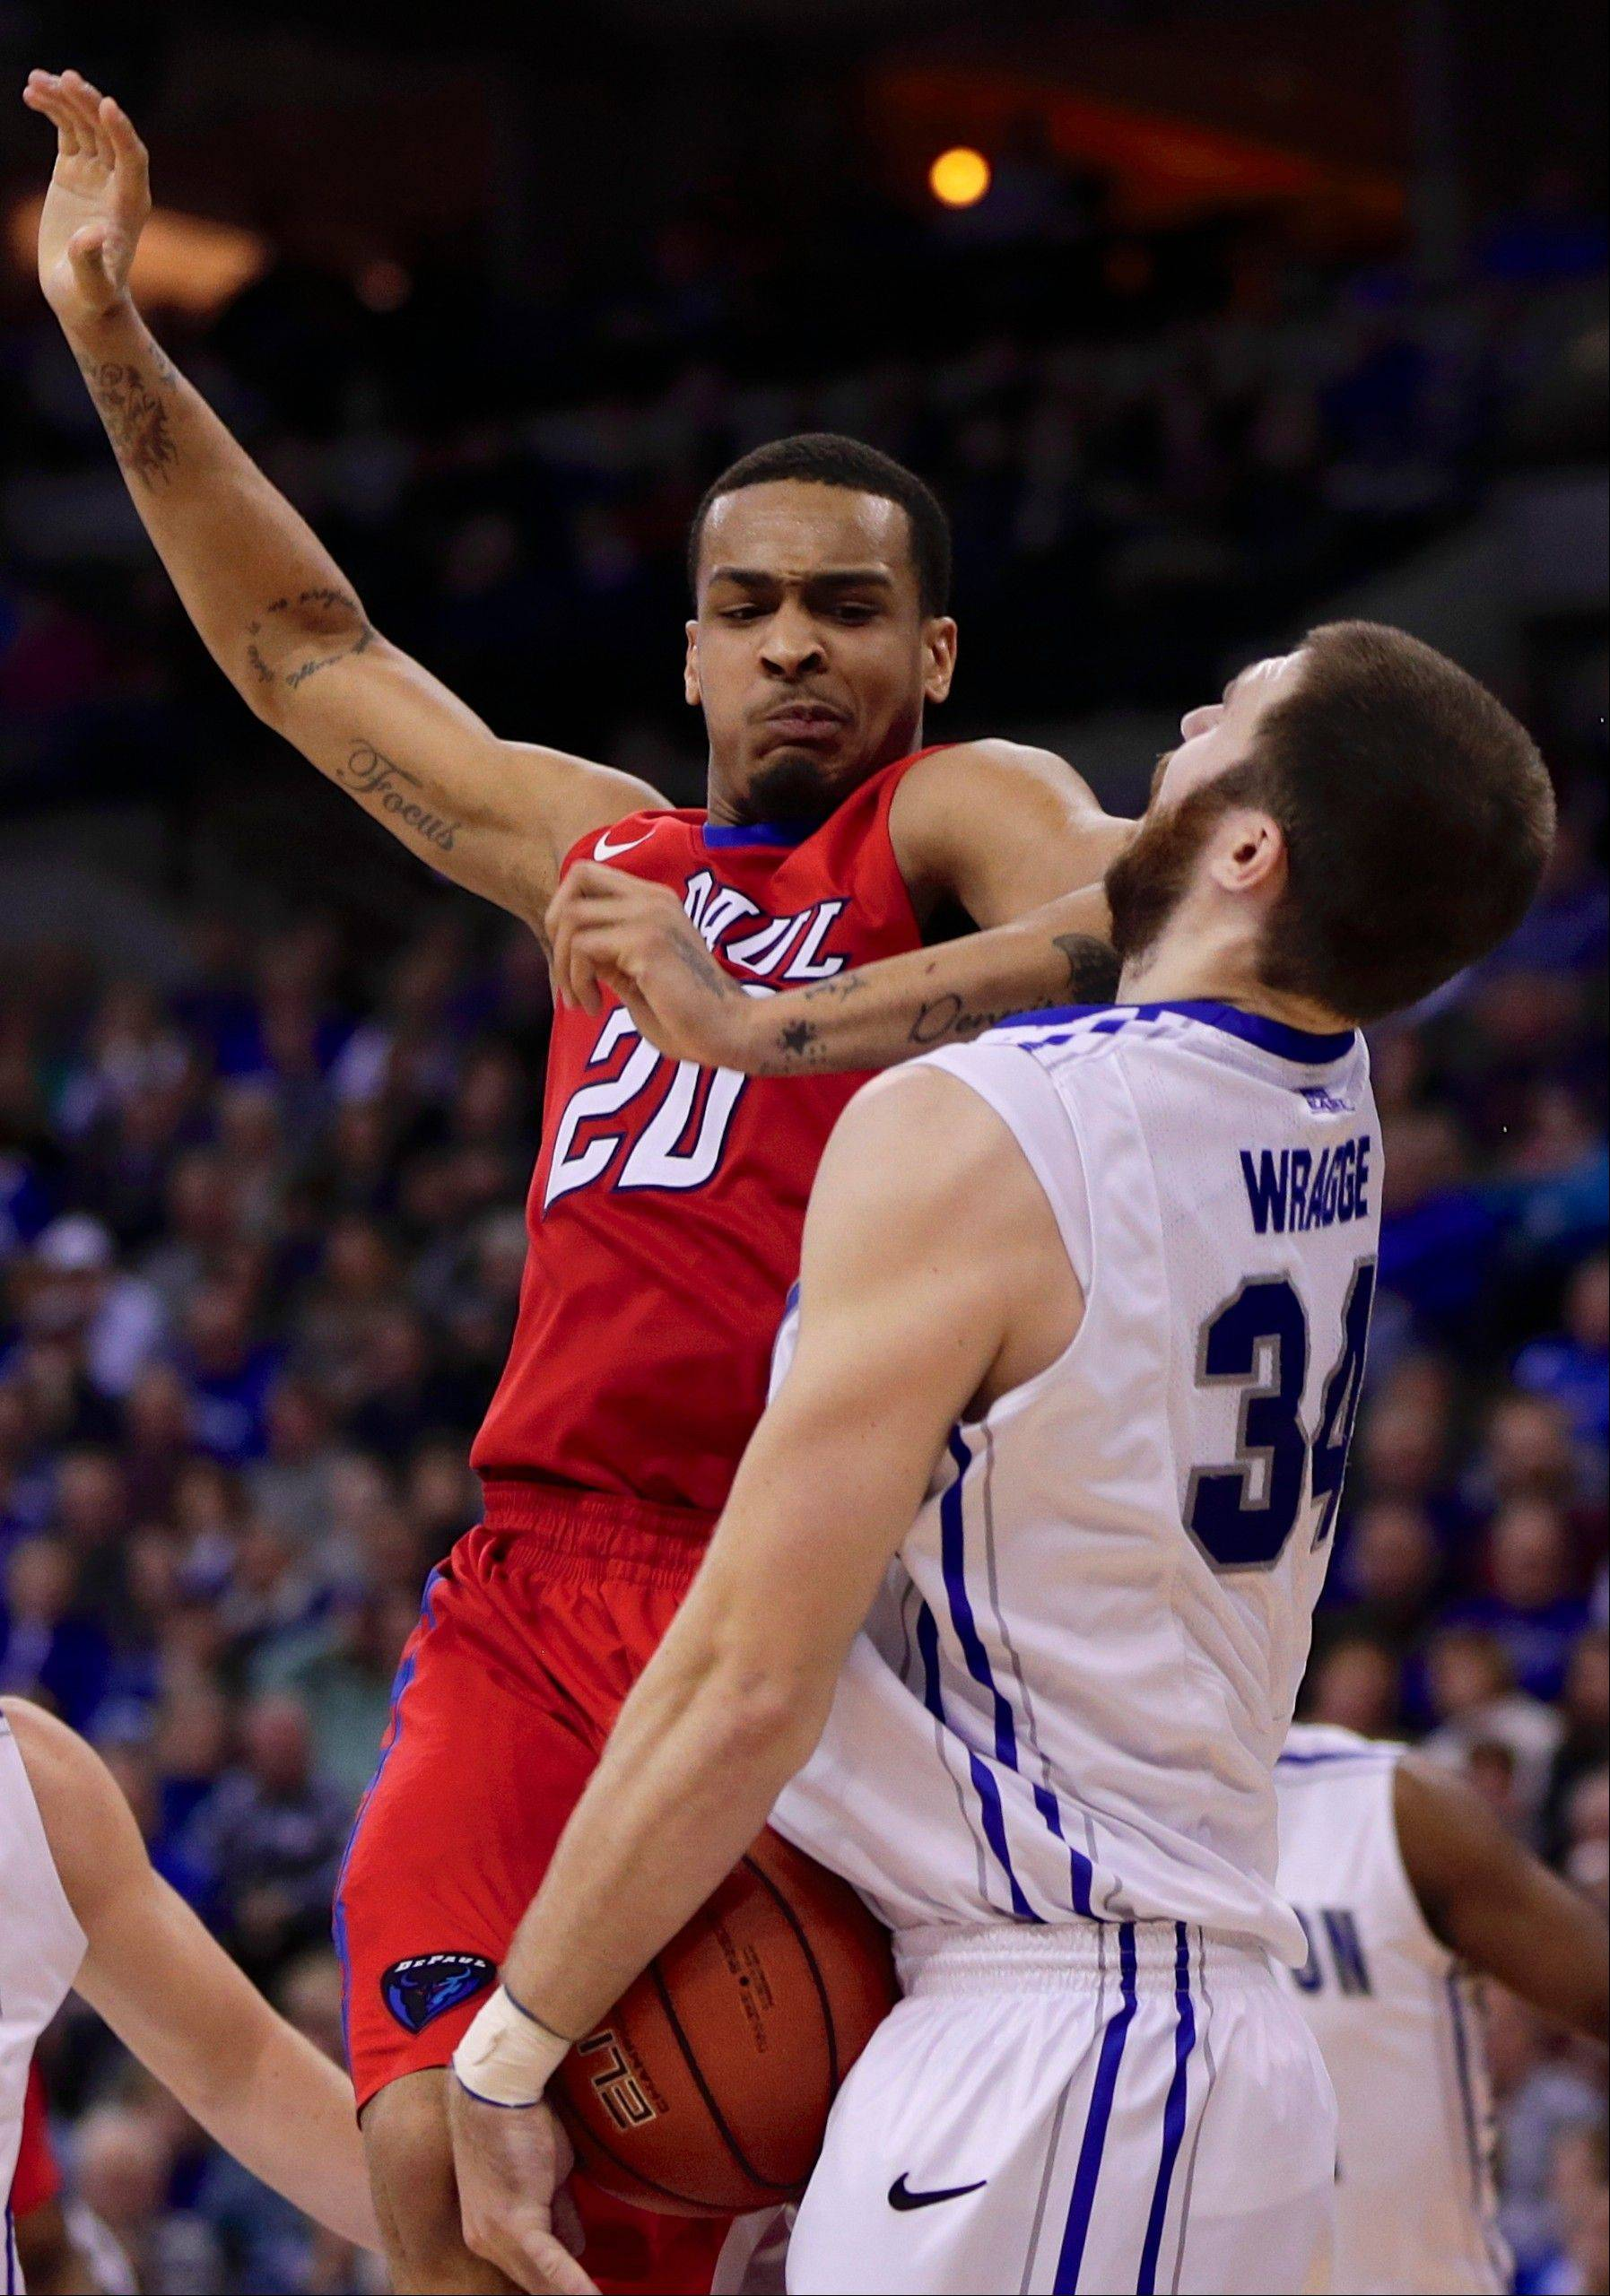 Creighton's Ethan Wragge (34) is hit by the elbow of DePaul's Brandon Young (20) in the second half of an NCAA college basketball game in Omaha, Neb., Friday, Feb. 7, 2014. Creighton won 78-66. (AP Photo/Nati Harnik)